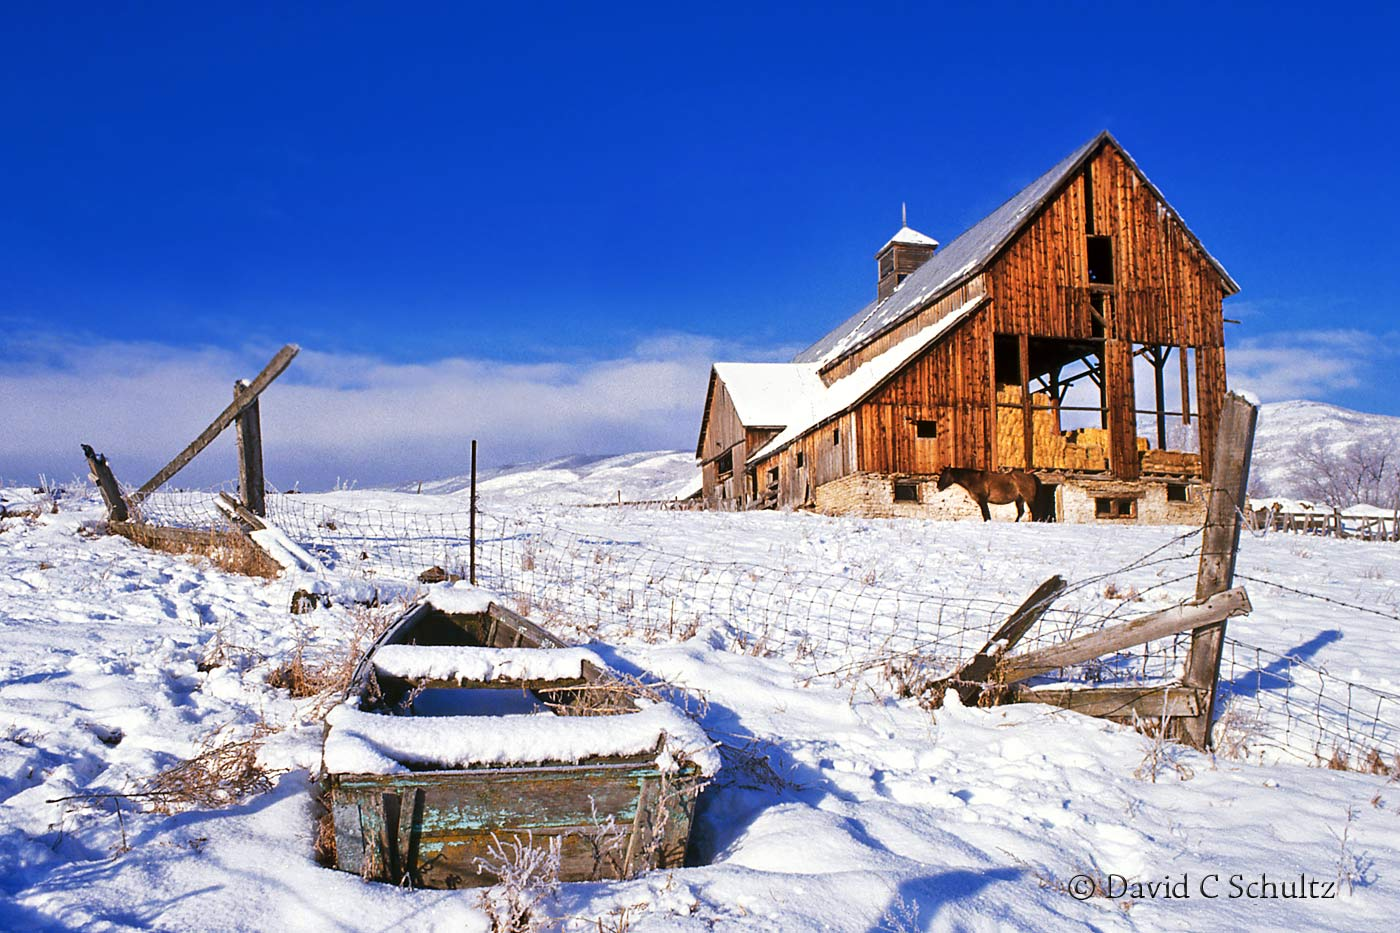 Winter at the Tate Barn Heber Valley Utah - Image #13-585